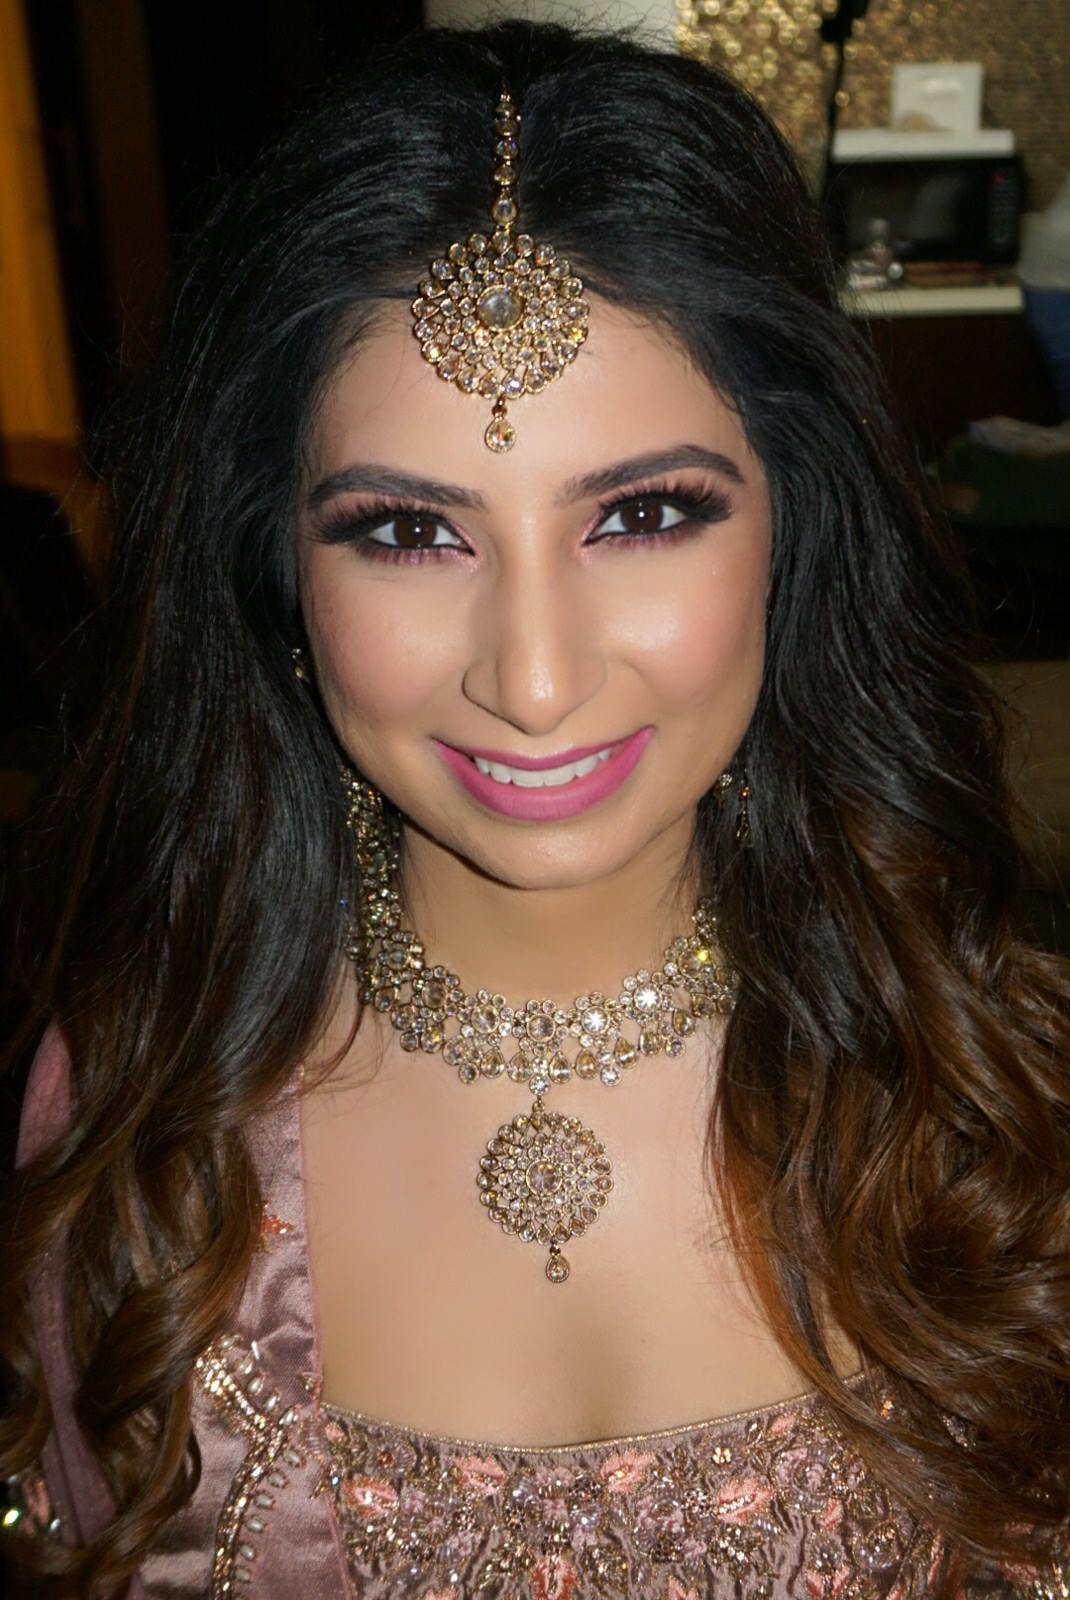 Makeup by Shilpa Indian Wedding Makeup Artists in Dallas